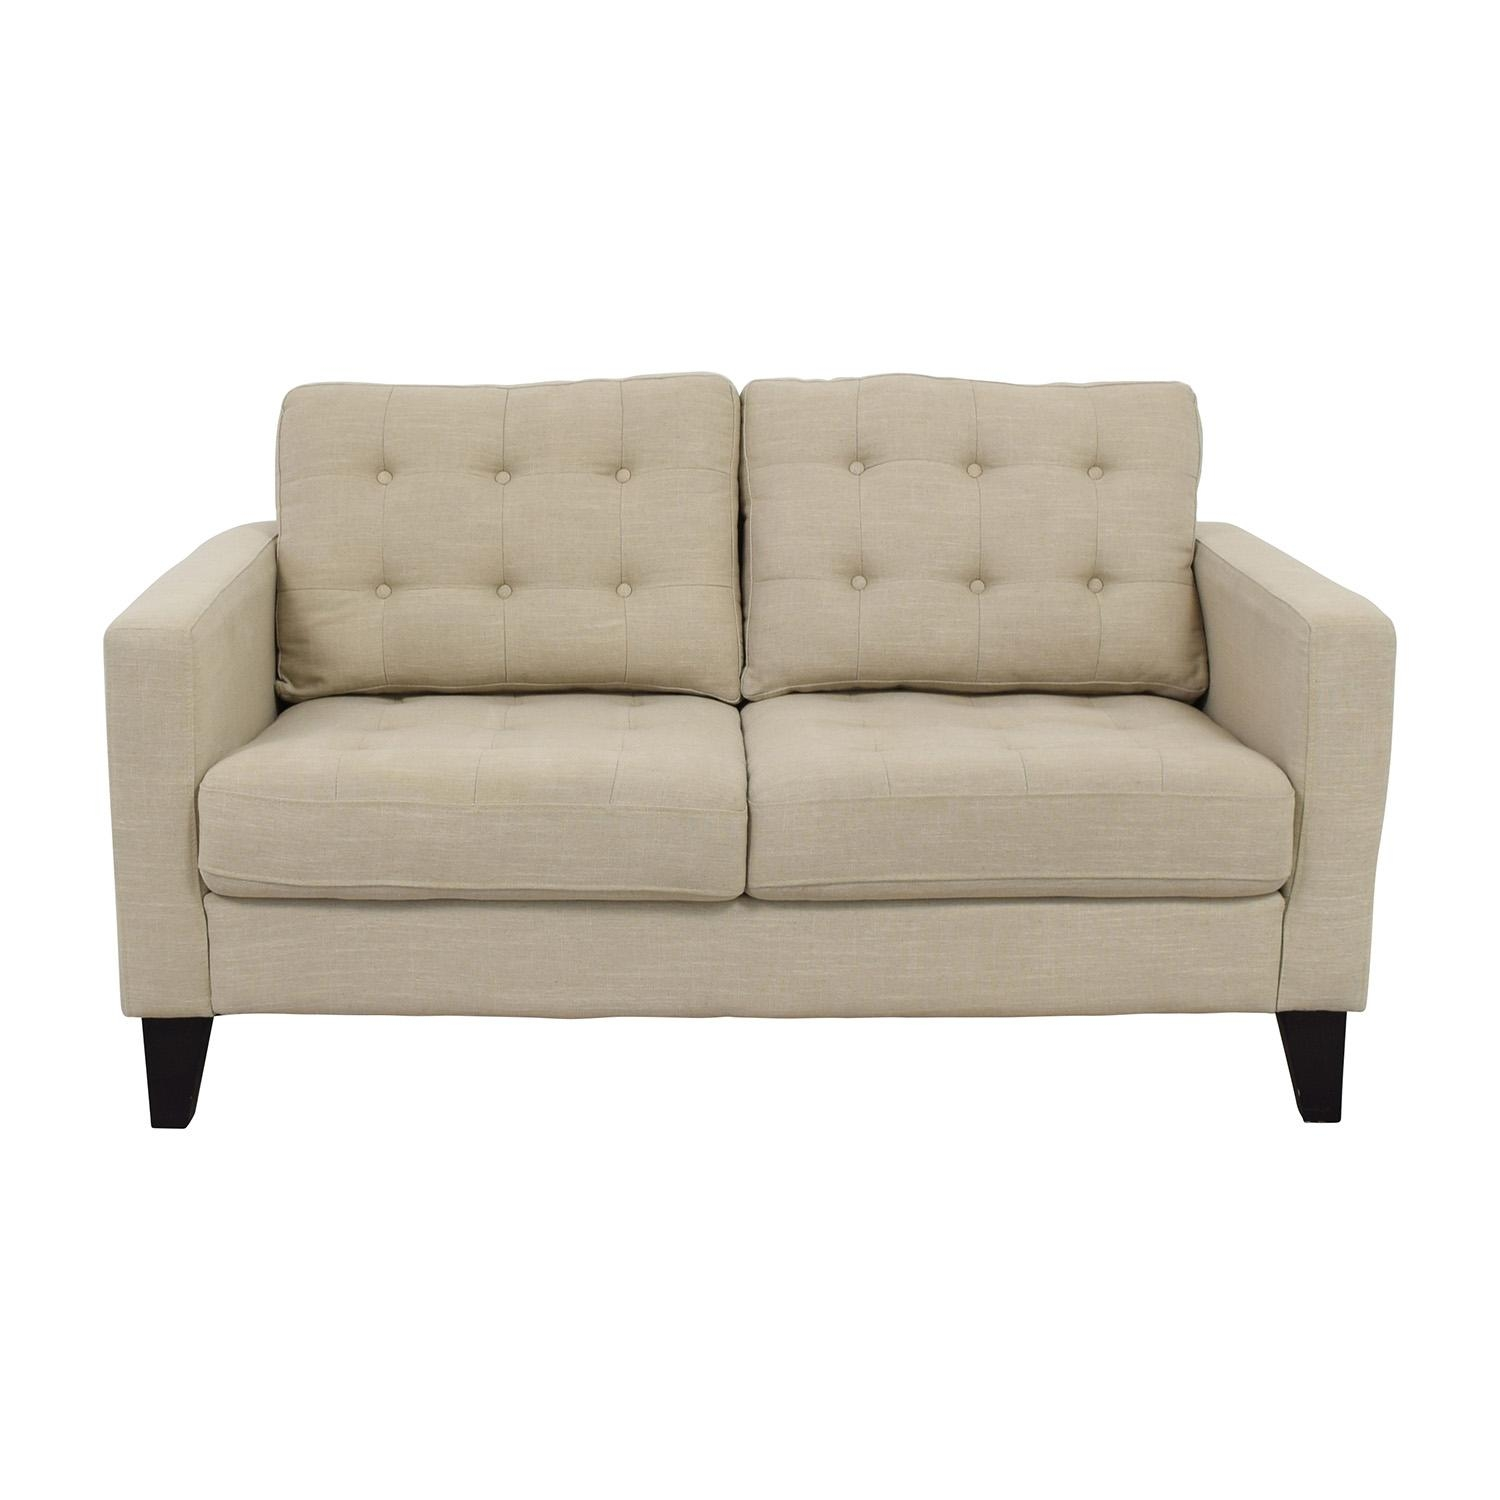 72% Off – Serta Serta Astoria Coated Fabric Sofa In Cannoli Cream Throughout Pier 1 Sofa Beds (Image 5 of 20)